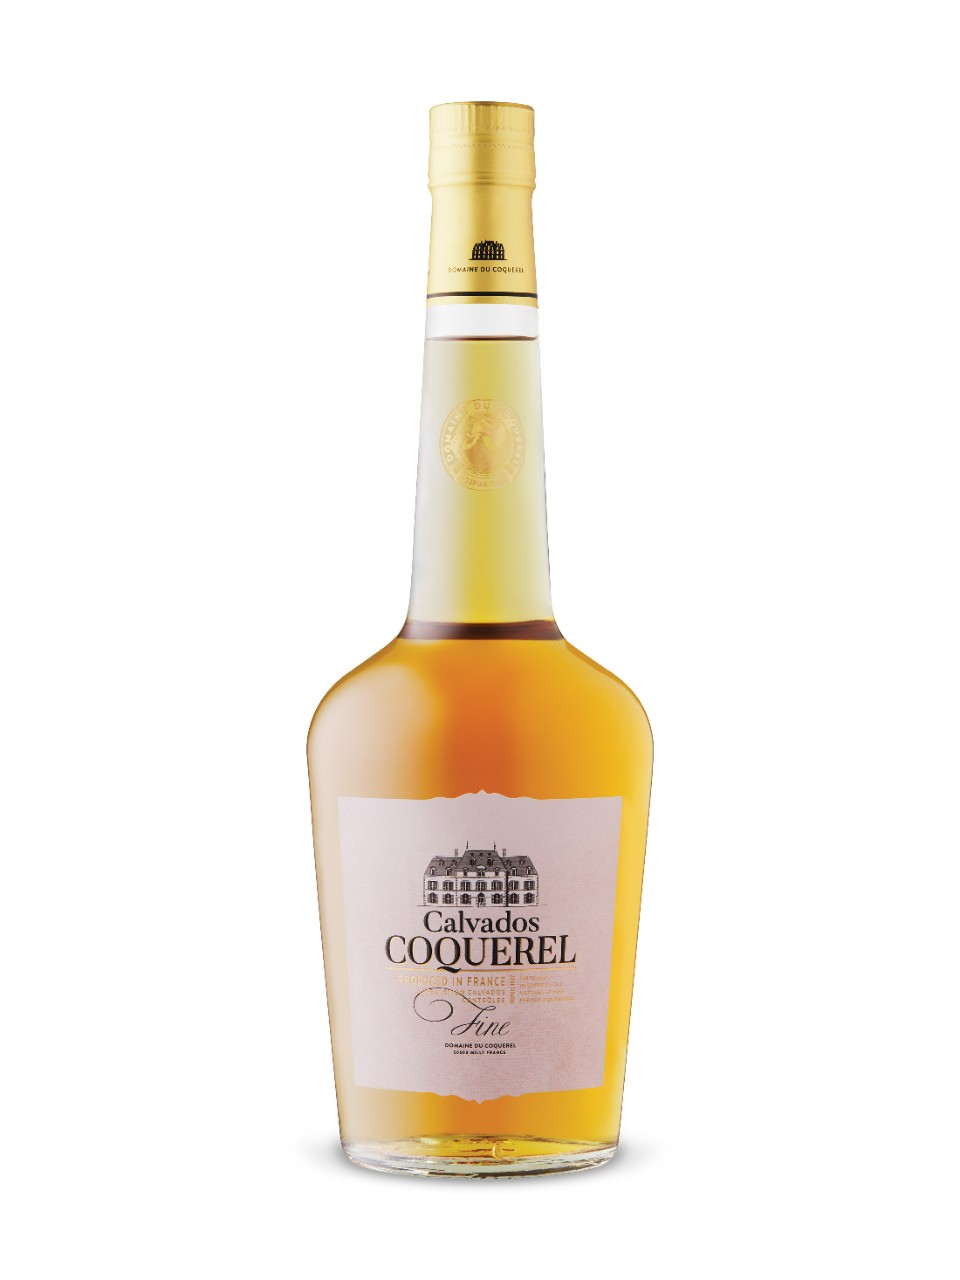 Image for Coquerel Fine Calvados from LCBO